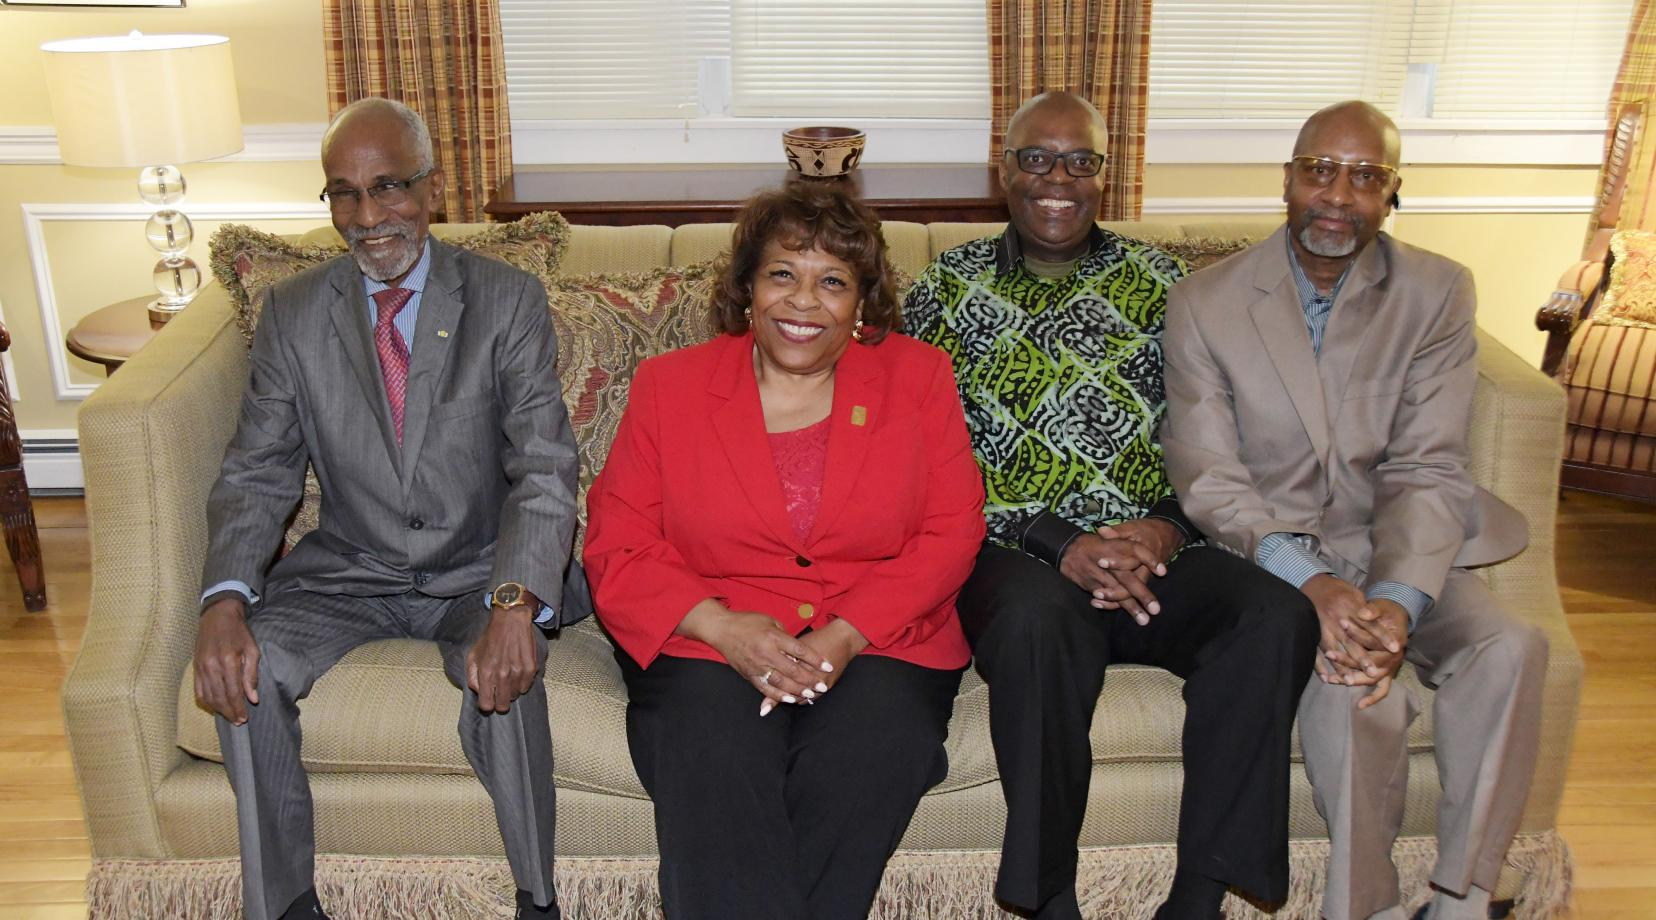 <p>(L-r) APRM Minister Khayar Oumar Defallah, University President Wilma Mishoe, APRM CEO Dr. Eddy Maloka, and Center for Global Africa&#039;s Ezrah Aharone, pose together during a April 9 reception at the President&#039;s Residence.</p>